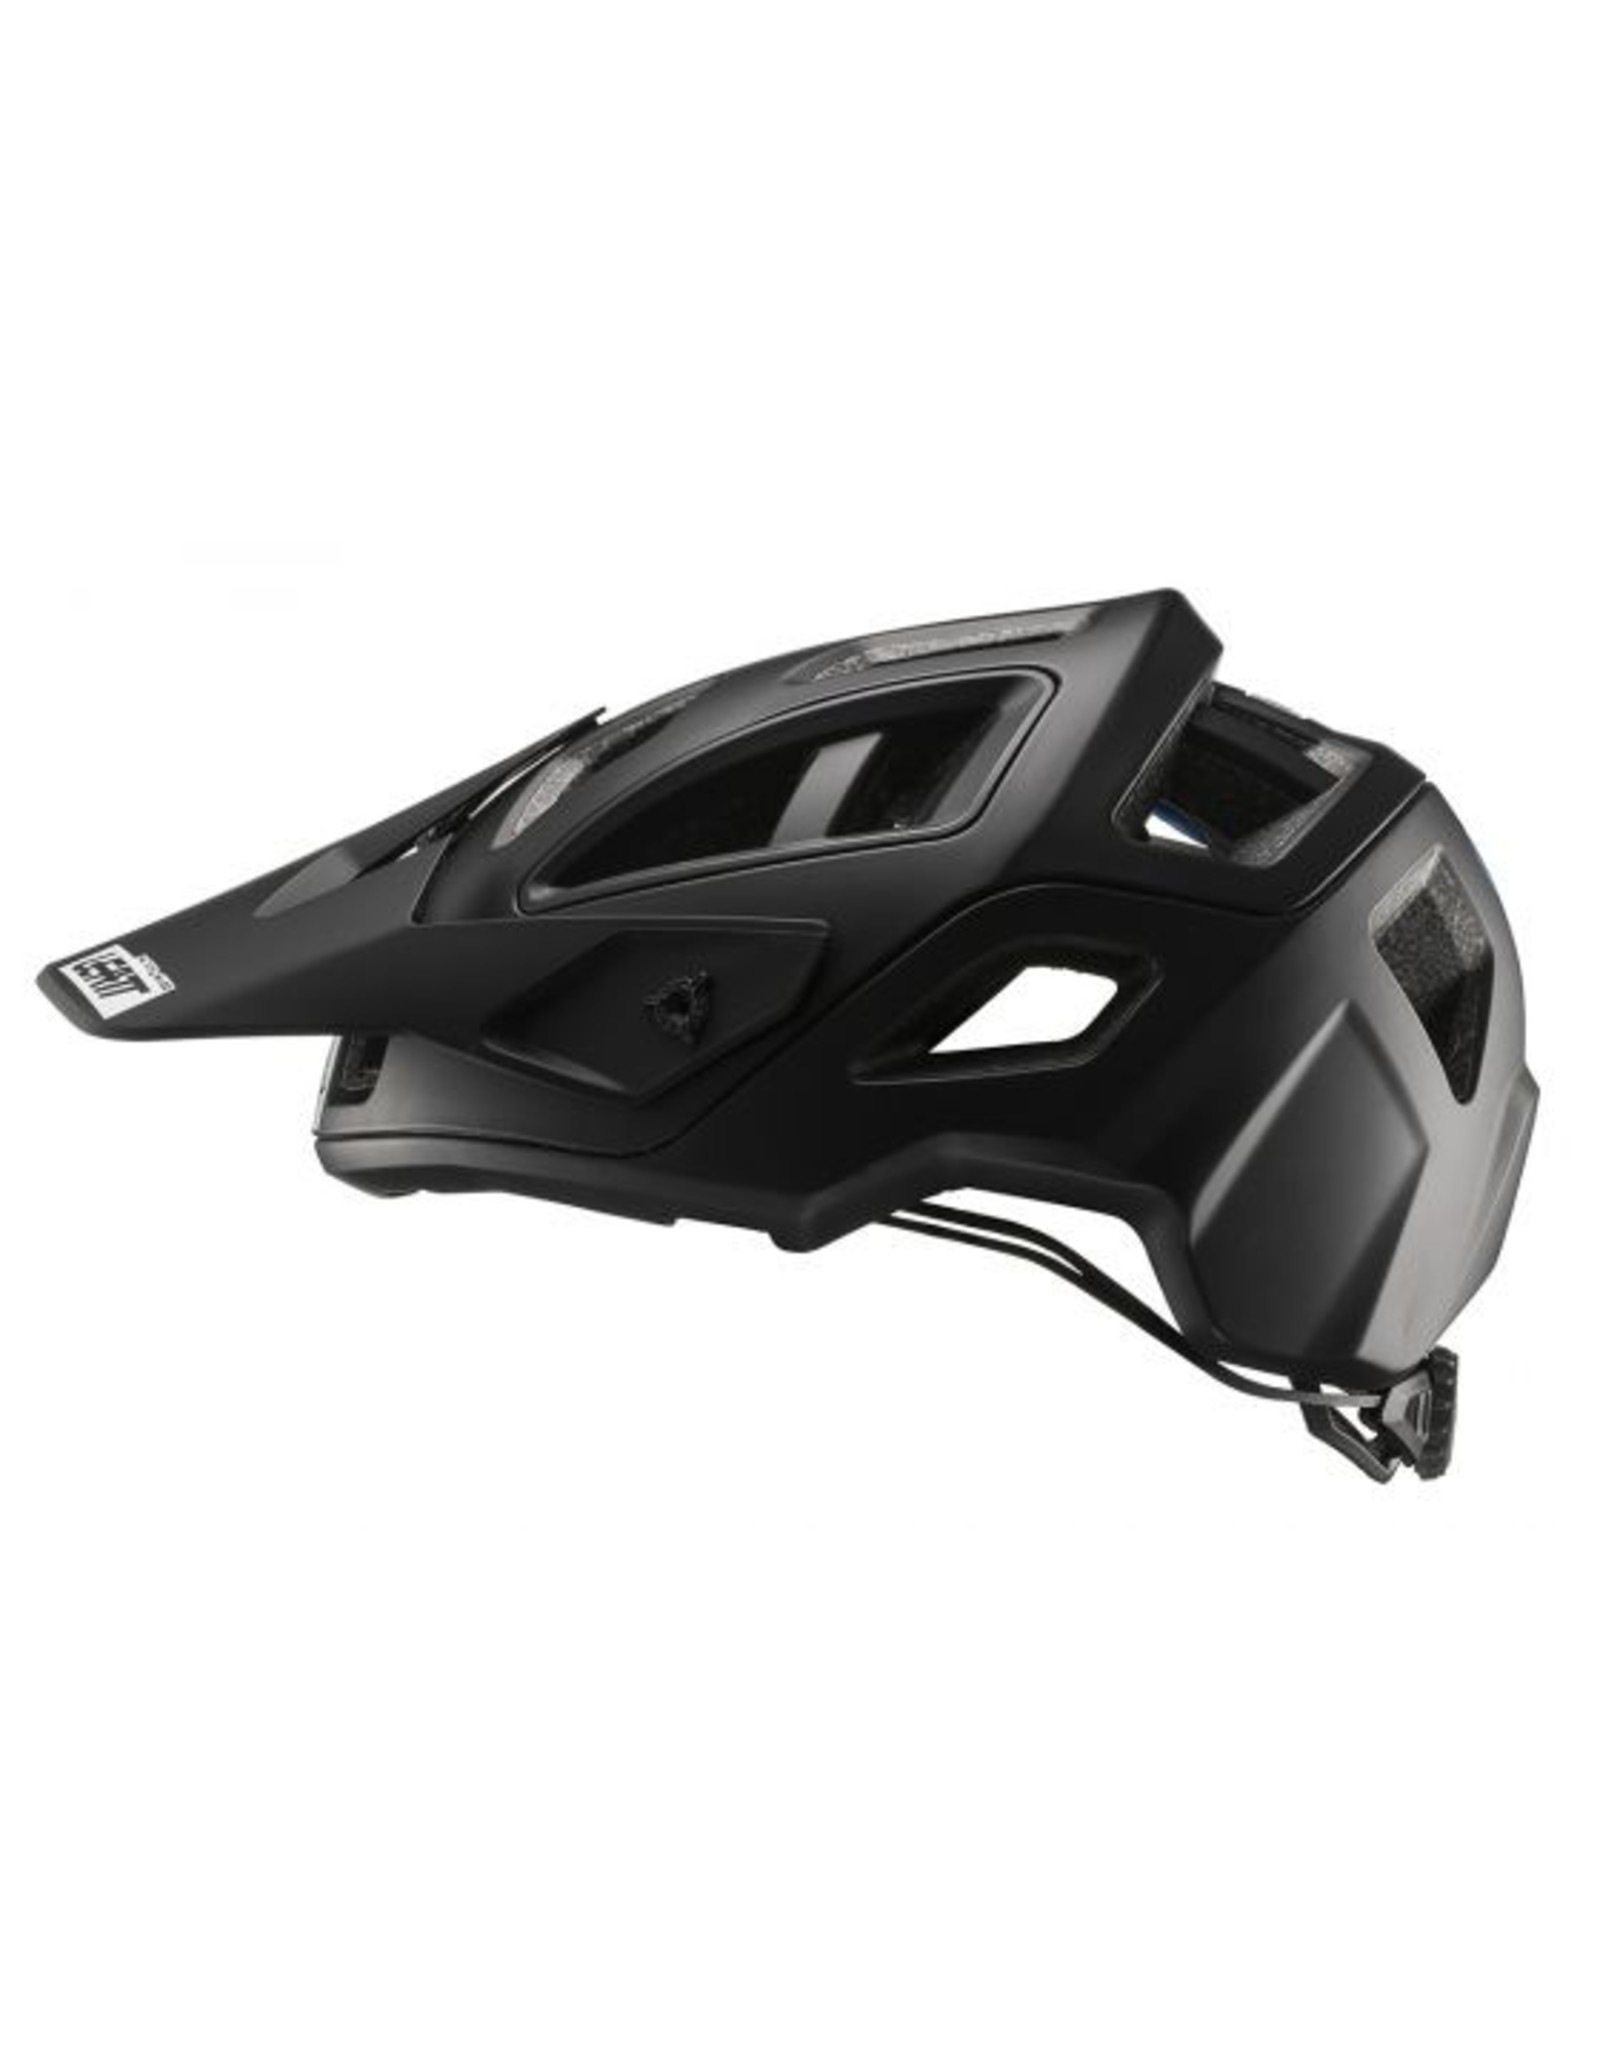 LEATT Leatt - DBX 3.0 All Mountain - Black - Medium